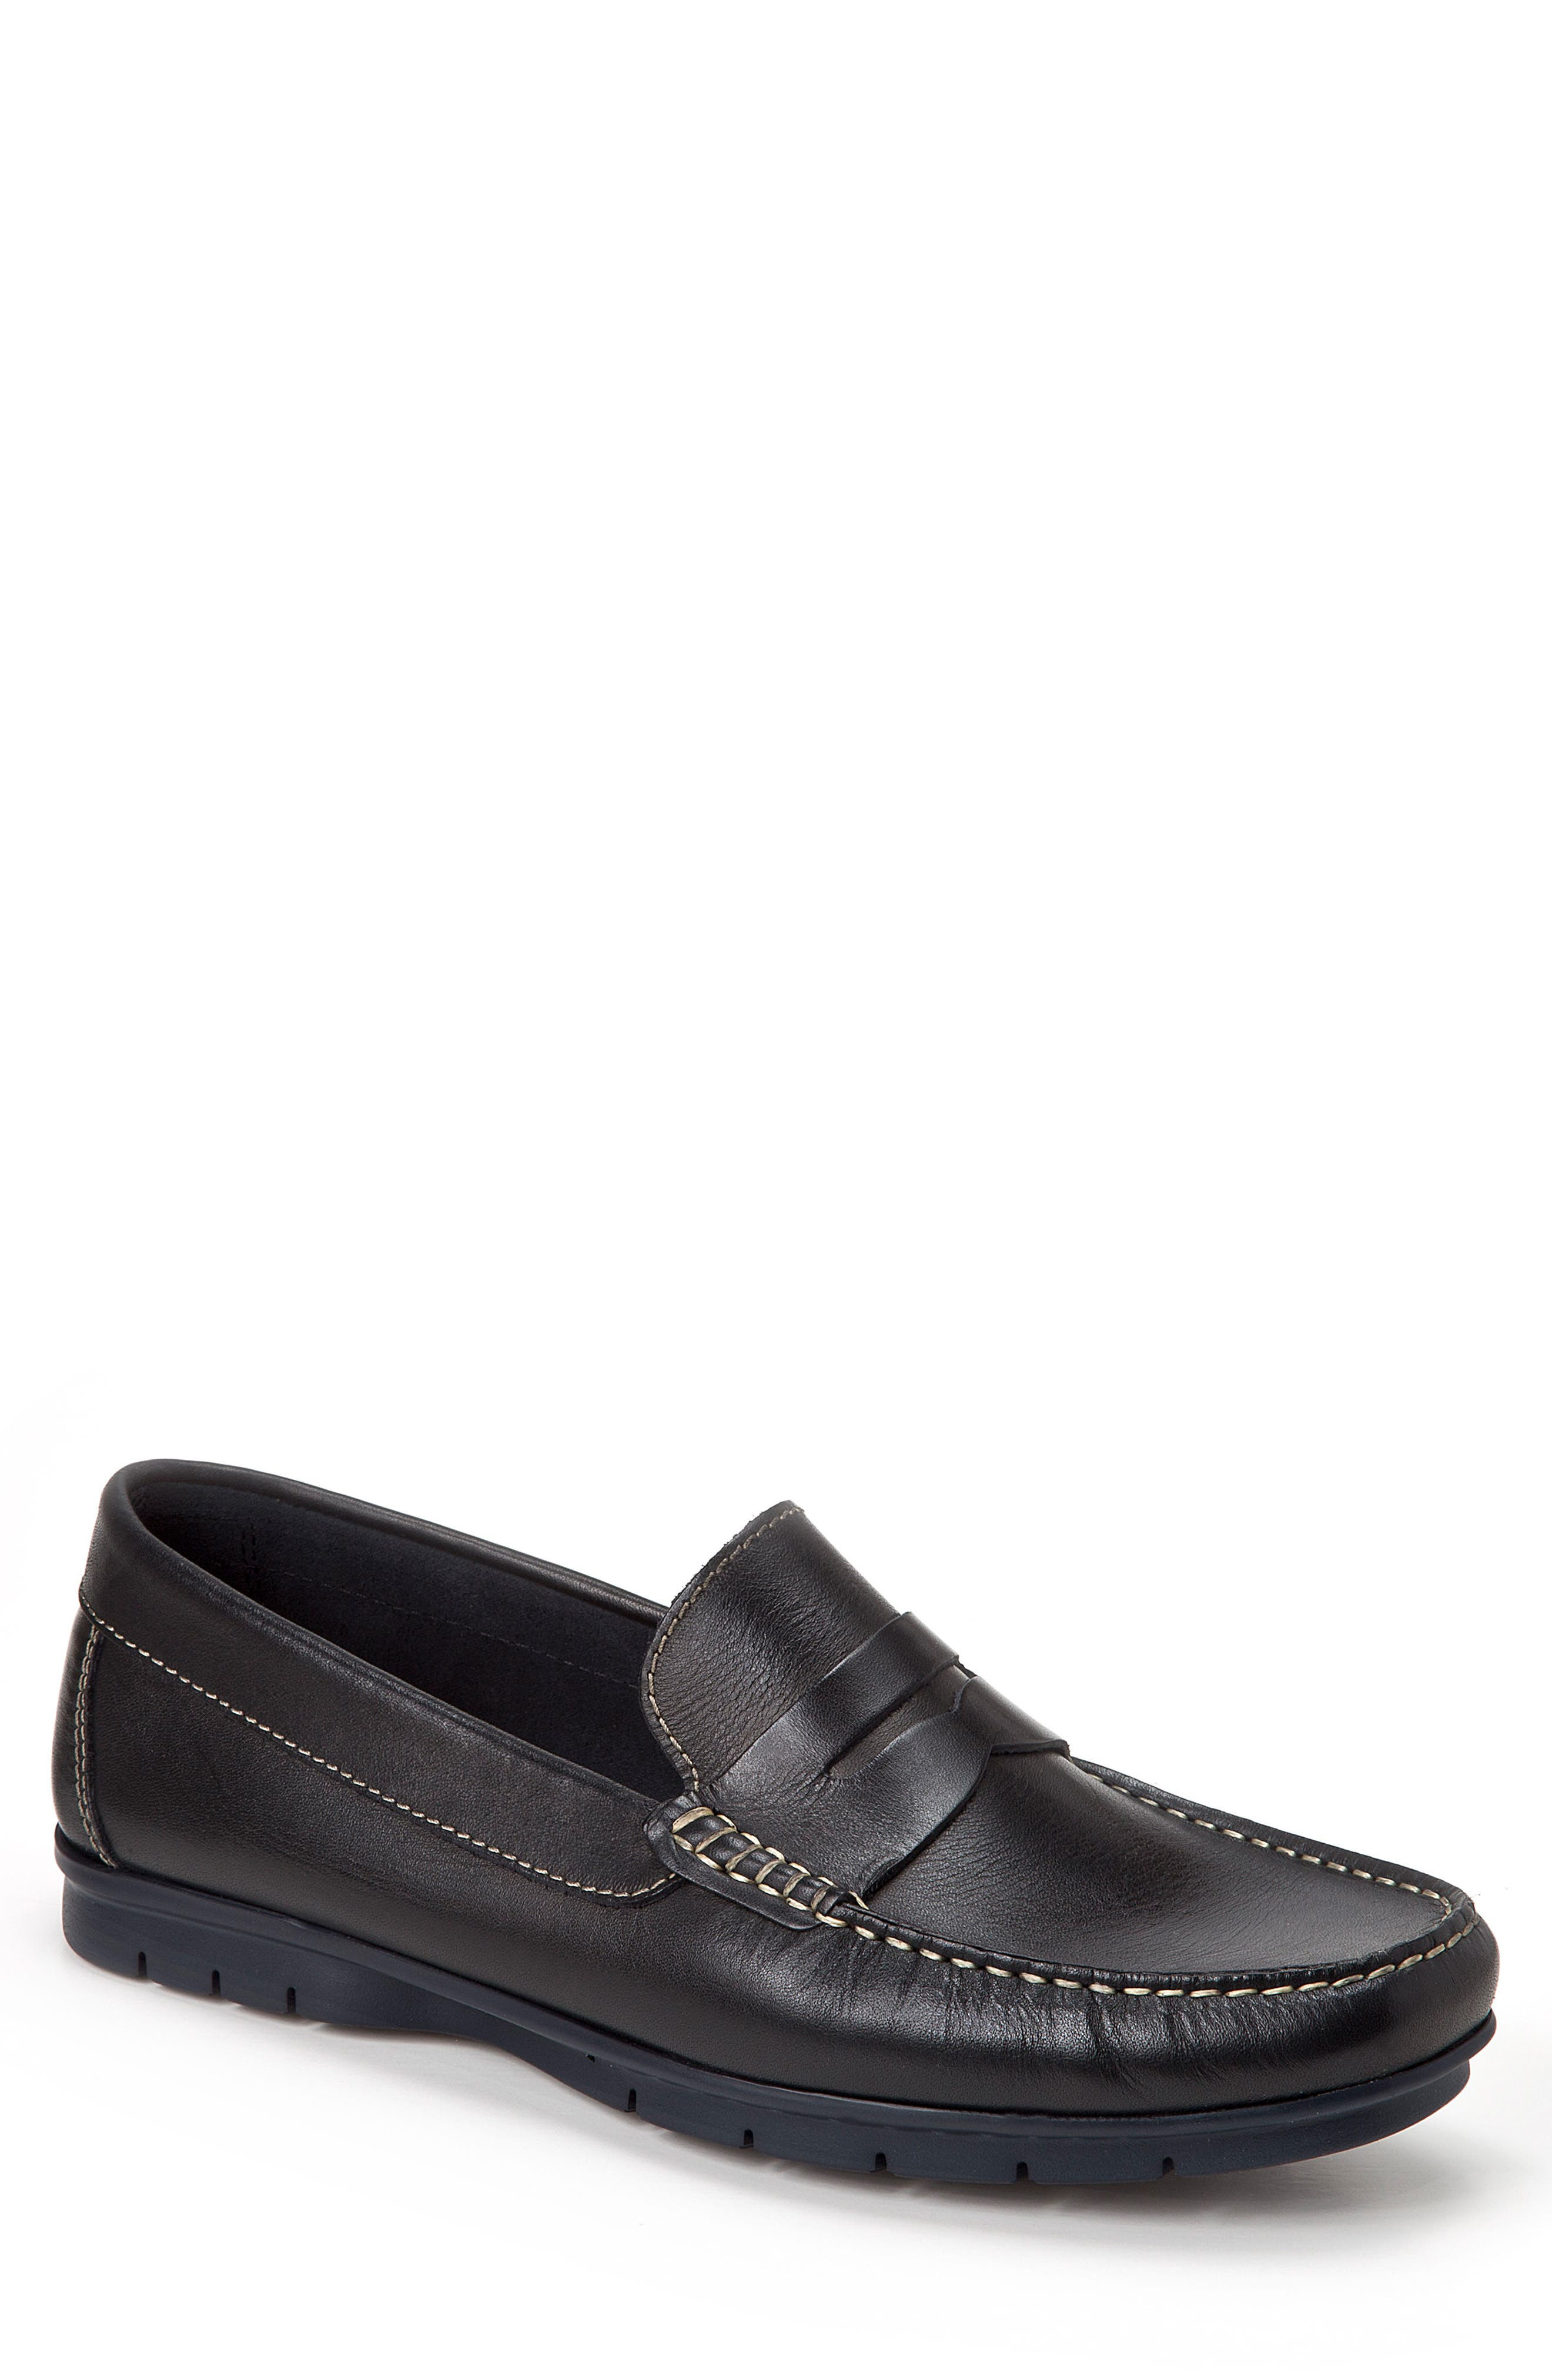 Paco Penny Loafer,                             Main thumbnail 1, color,                             BLACK LEATHER